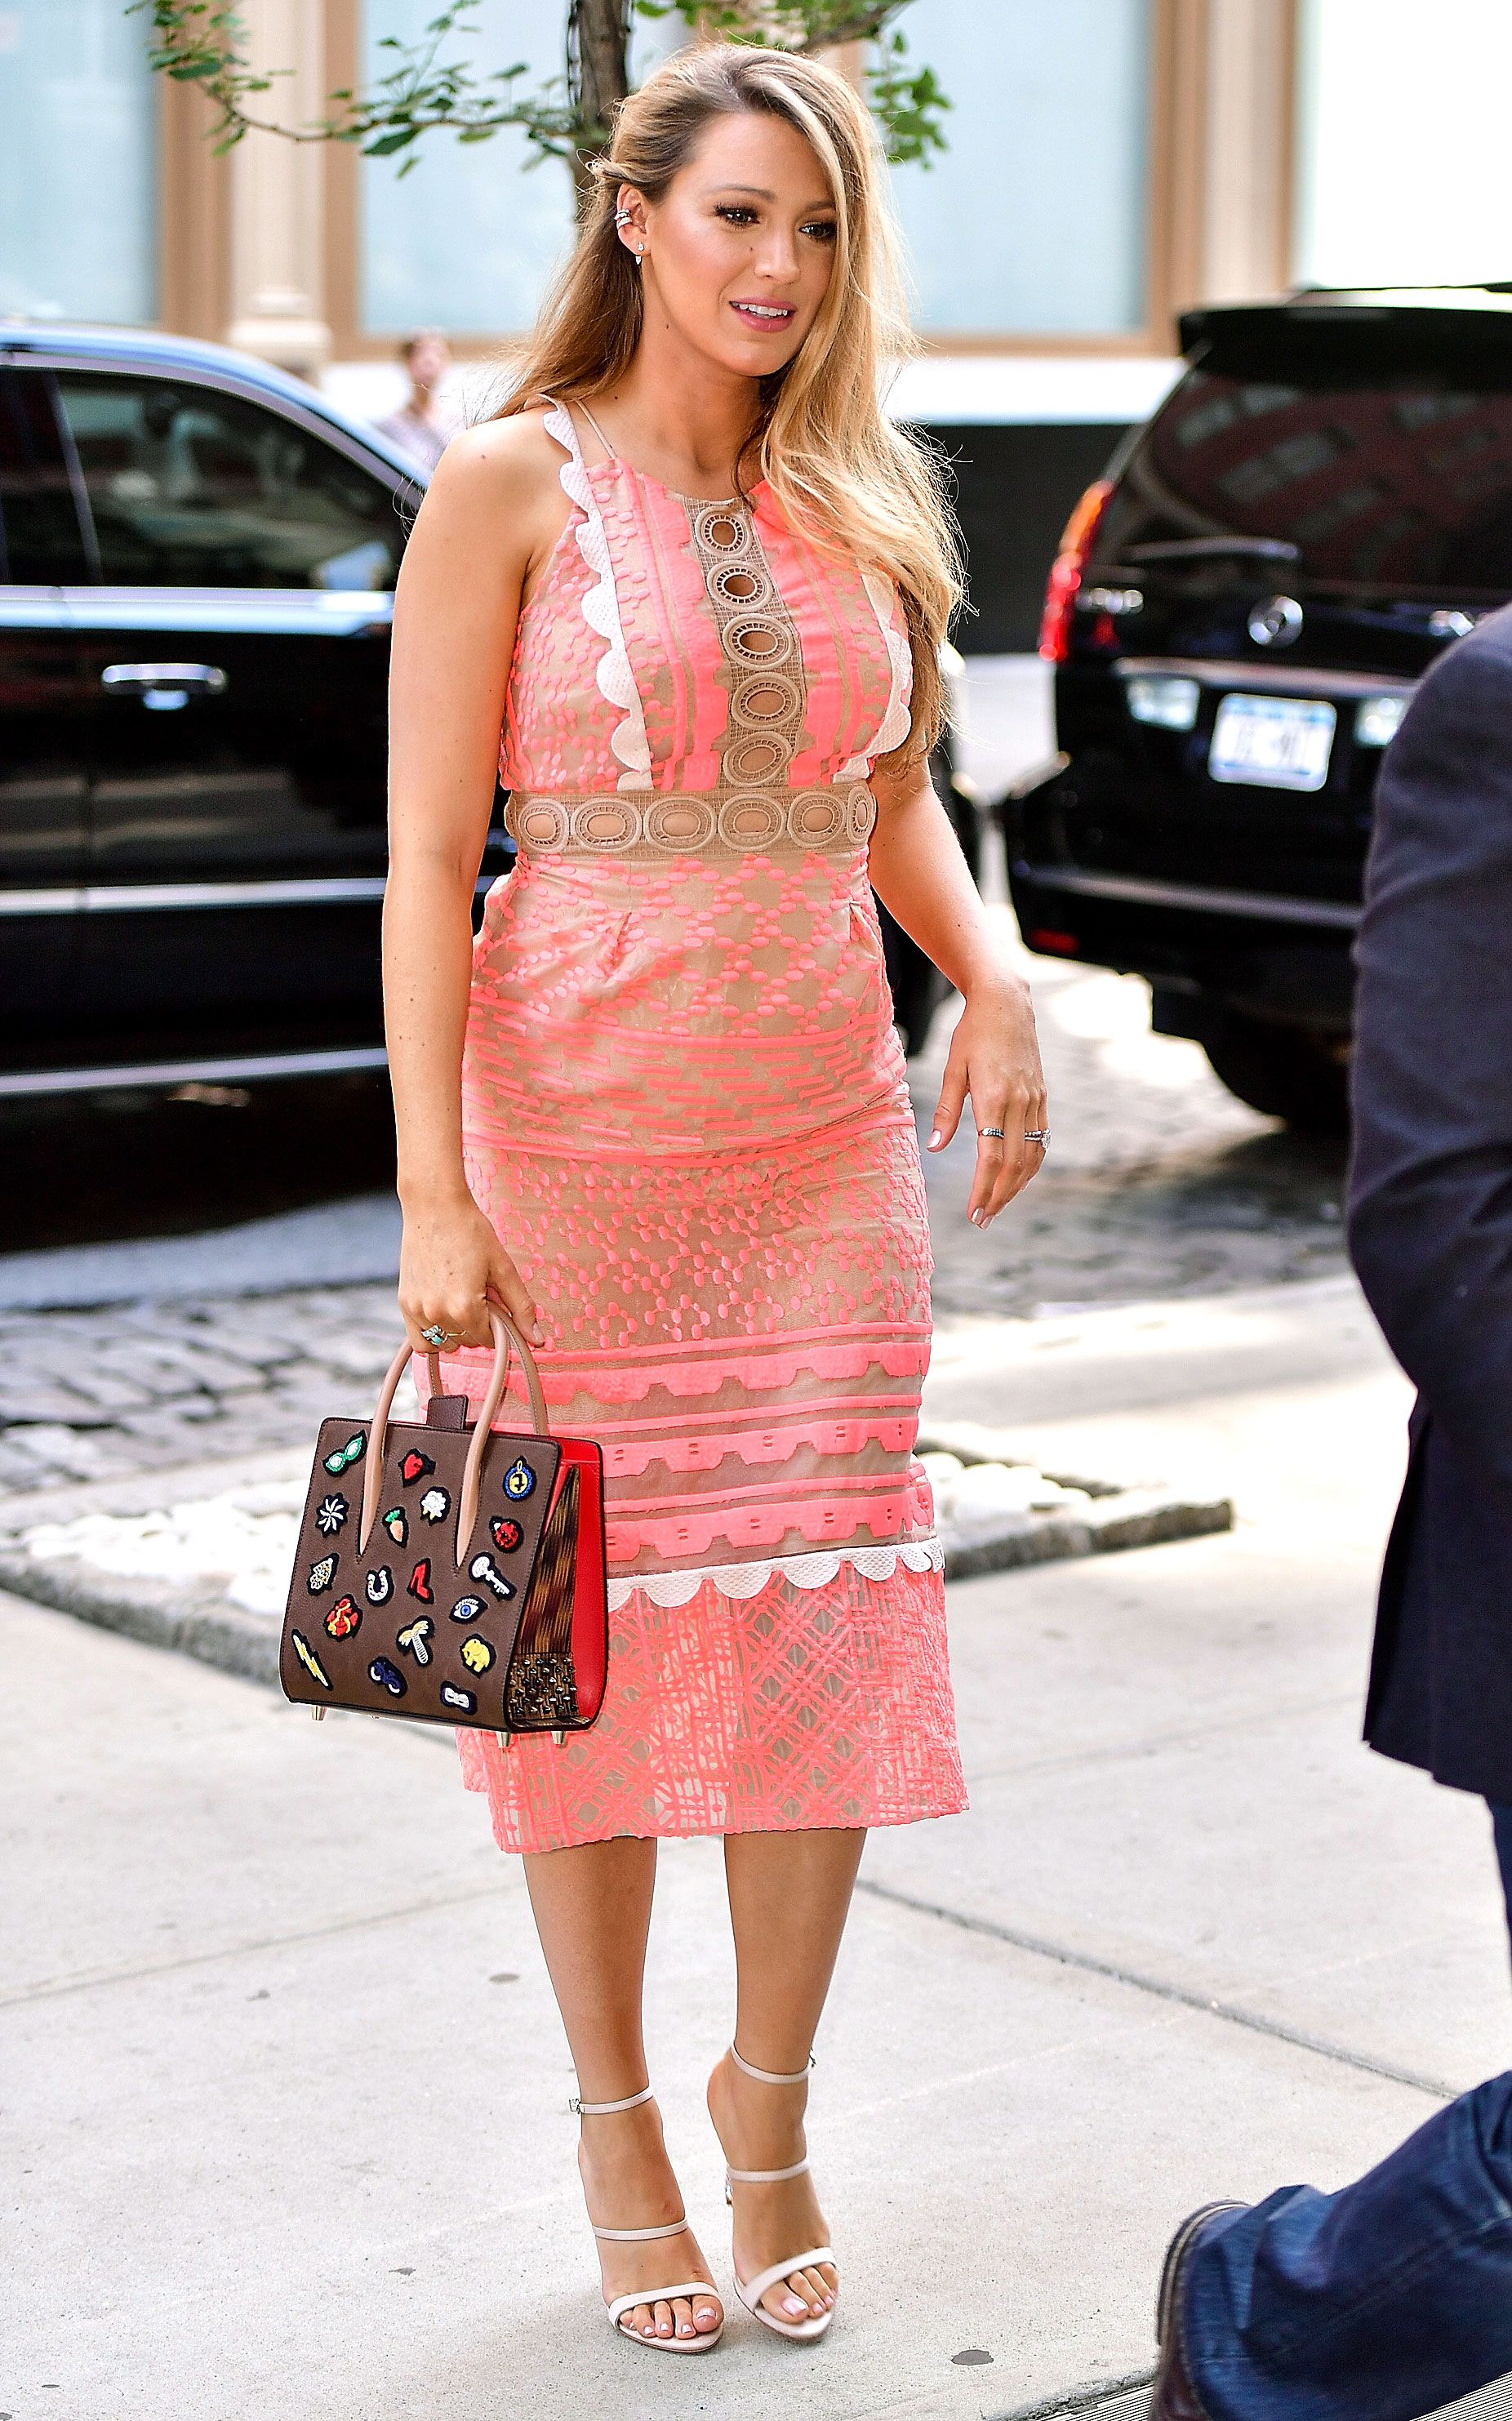 Pregnant Blake Lively Glows in Bump-Hugging Neon Pink Dress